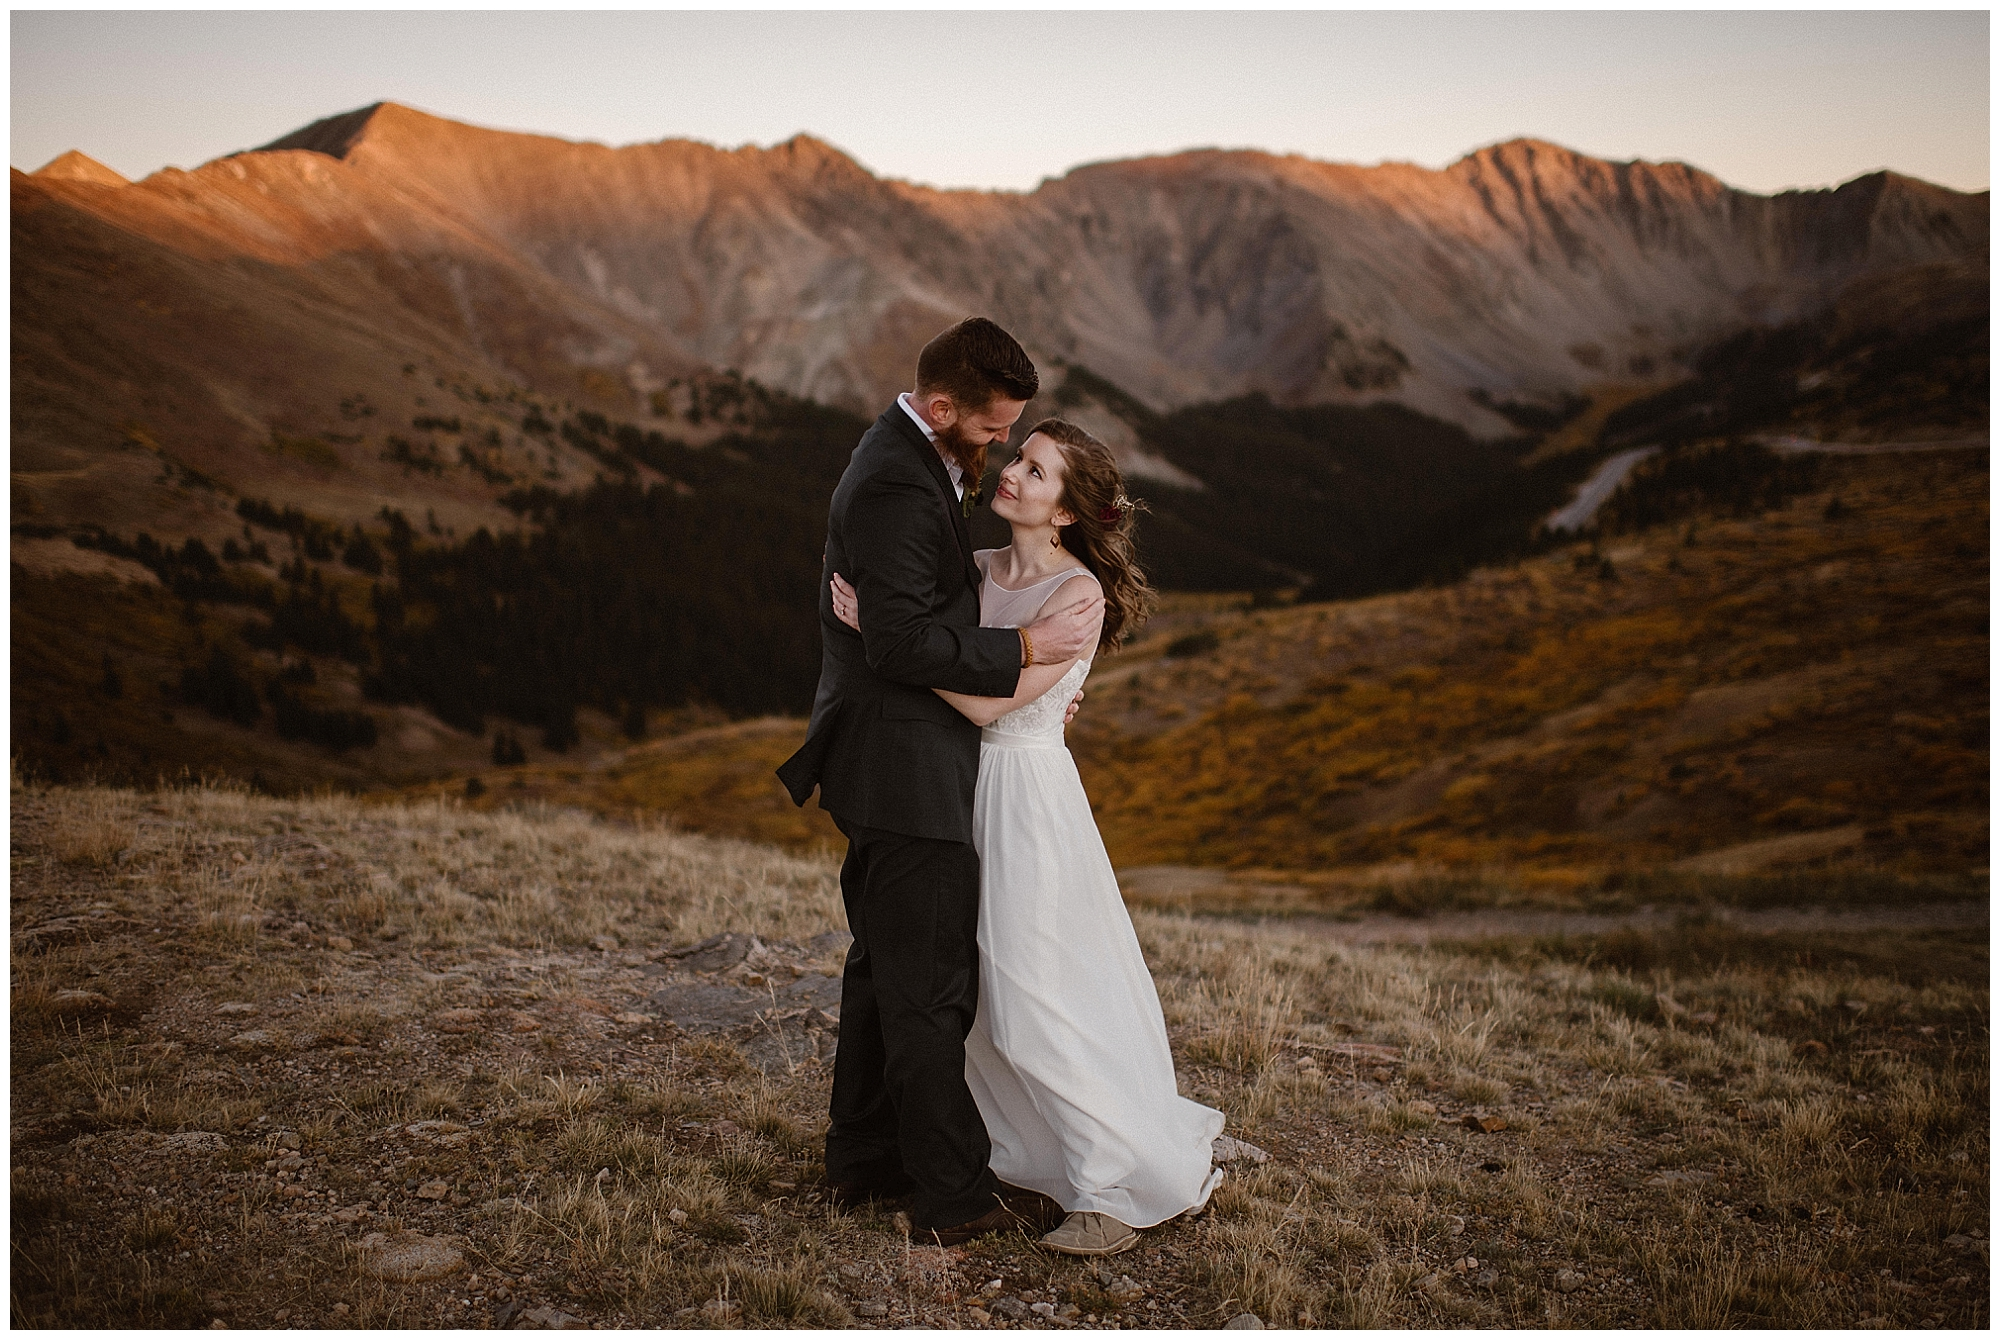 You have a choice when it comes to your wedding! We help you plan your ideal elopement day anywhere in the world. Photo by Maddie Mae, Adventure Instead Elopement Photographers.